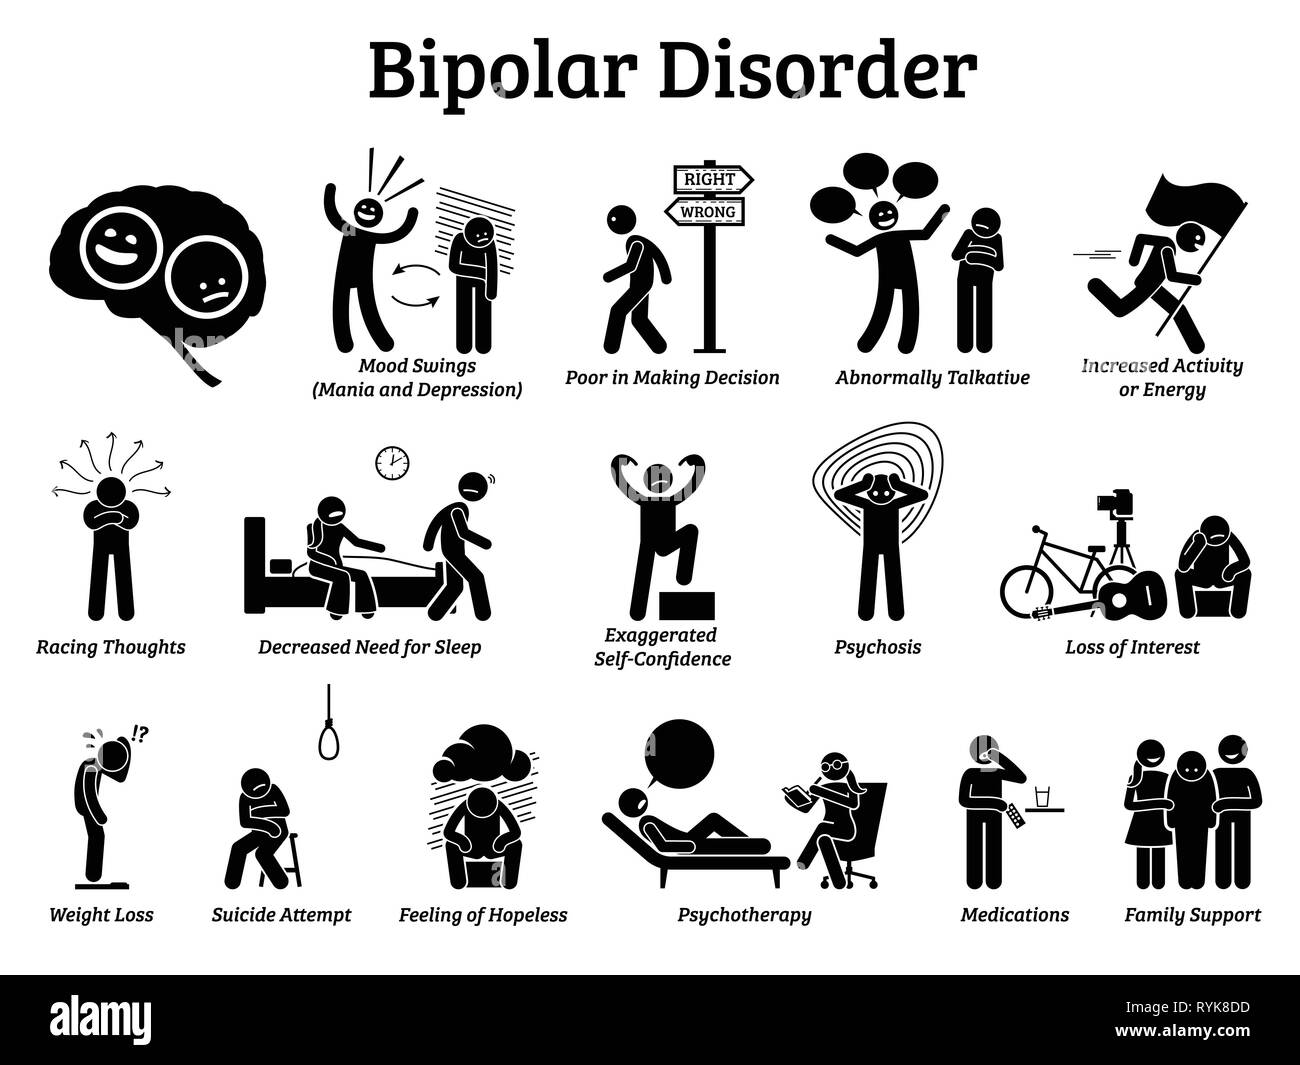 Bipolar mental disorder icons. Illustrations show signs and symptoms of bipolar disorder on mania and depression behaviors. He has mood swings and nee - Stock Vector